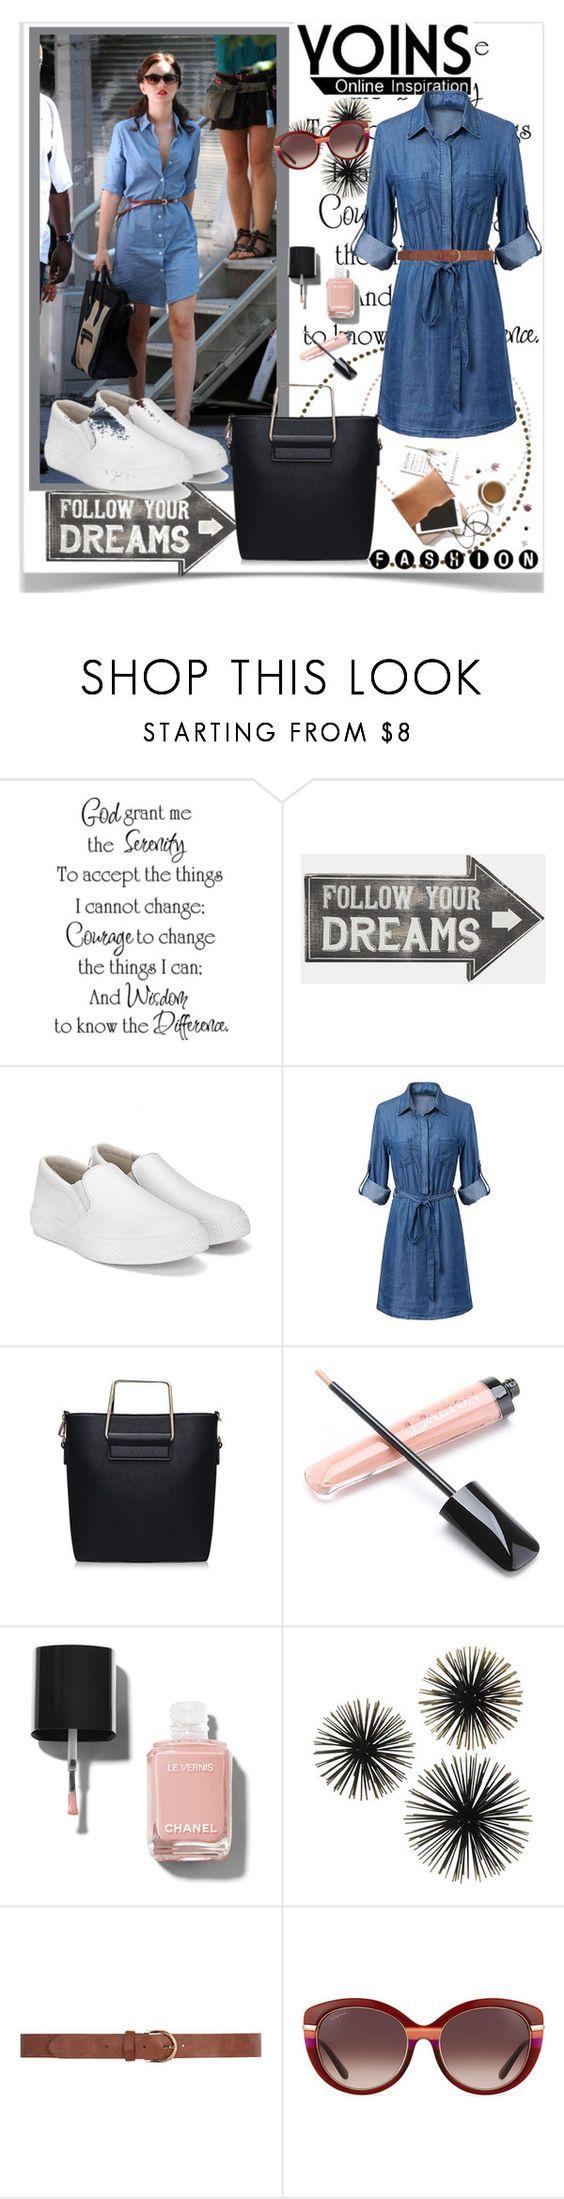 """""""Yoins  Contest"""" by ramiza-rotic ❤ liked on Polyvore featuring Sass & Belle, Chanel, Dorothy Perkins, Salvatore Ferragamo and yoins"""